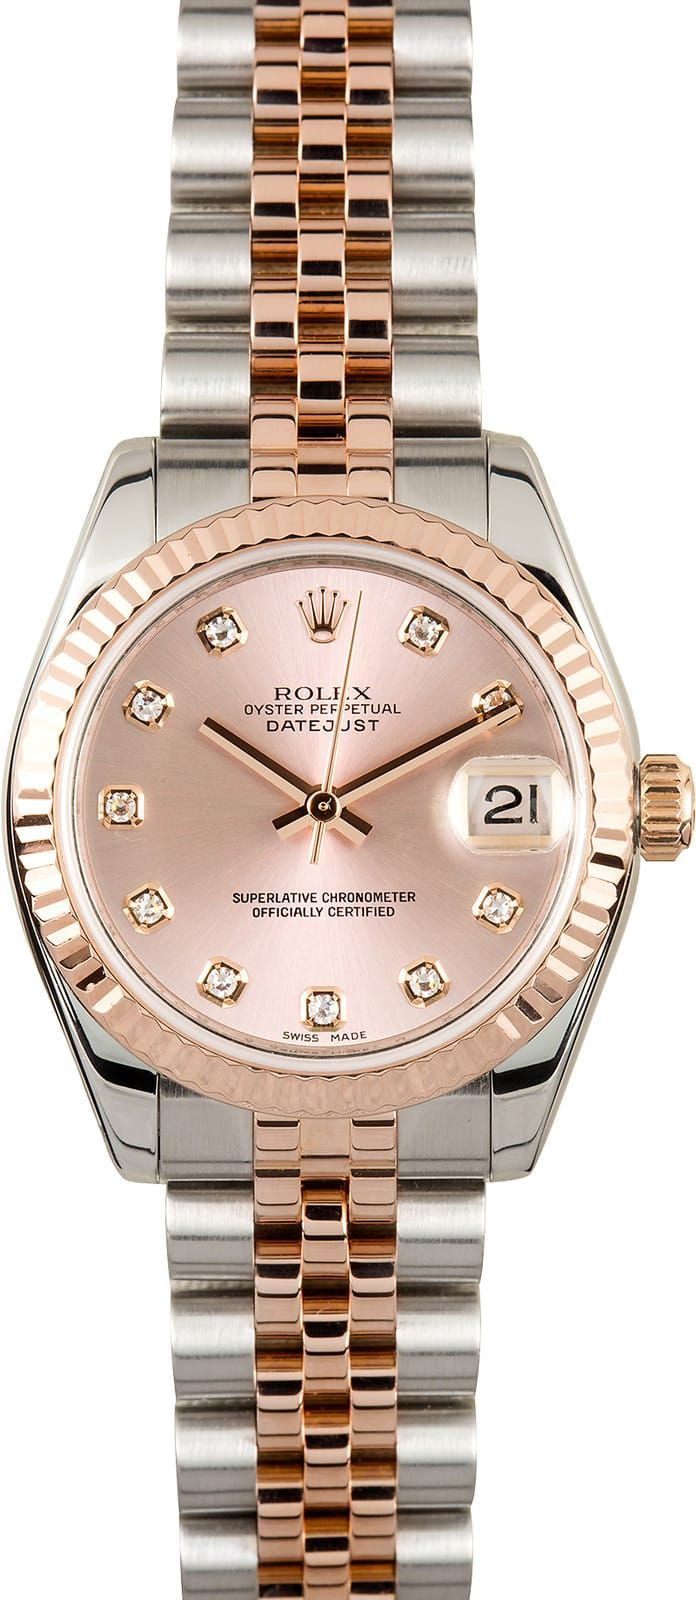 Manufacturer: Rolex   Model Name/Number: Ladies Datejust 178271   Serial/Year: M 2007/2008   Grade: (What's This?) II   Gender: Ladies   Features: Automatic movement w/ date, Quickset, scratch-resistant sapphire crystal, waterproof screw-down crown   Case: Stainless steel w/ 18k Everose gold fluted bezel (31mm), inner reflector ring engraved w/ serial number   Dial: Pink w/ diamond hour markers   Bracelet: Stainless steel and 18k Everose gold Jubilee   Box & Papers: Original